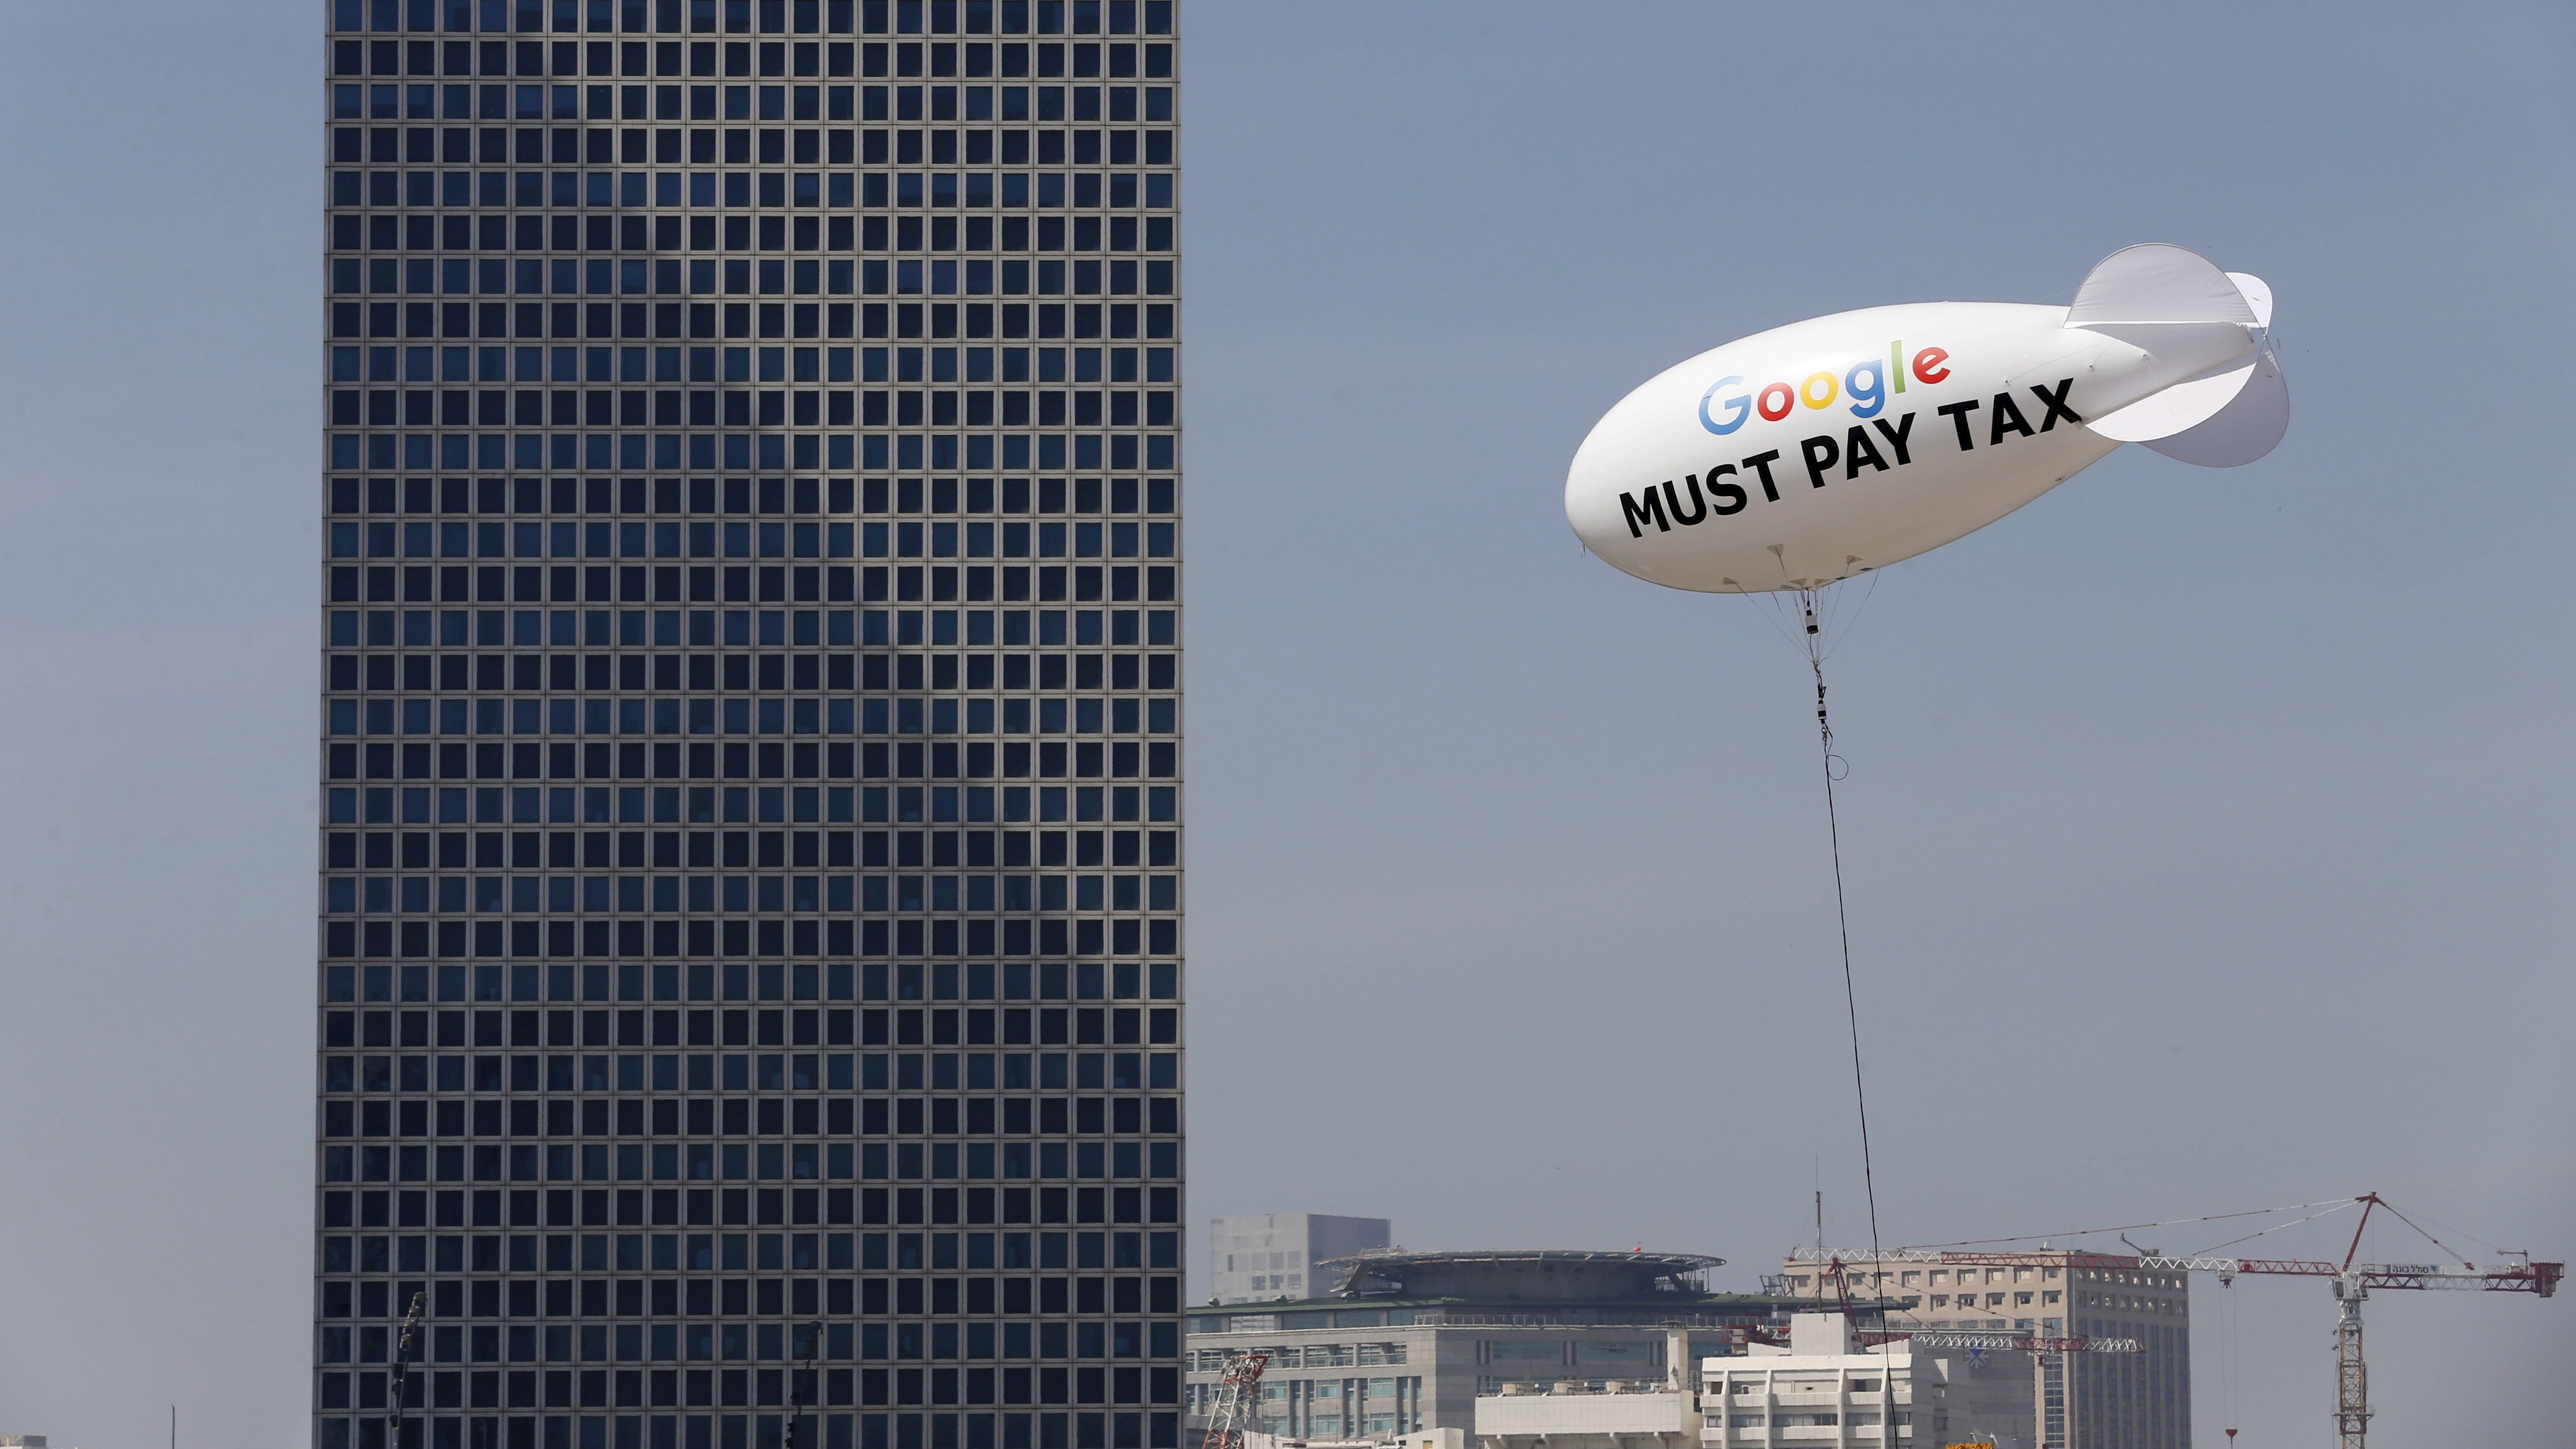 """A blimp reading """"Google must pay tax"""" is seen floating over the Tel Aviv skyline April 3, 2016. Israeli attorney Guy Ofir is the mastermind behind the blimp and told Reuters on Sunday that the airship will float until midnight some 200 meters from Google's offices with the intention of drawing public and media awareness to Google's tax issue."""